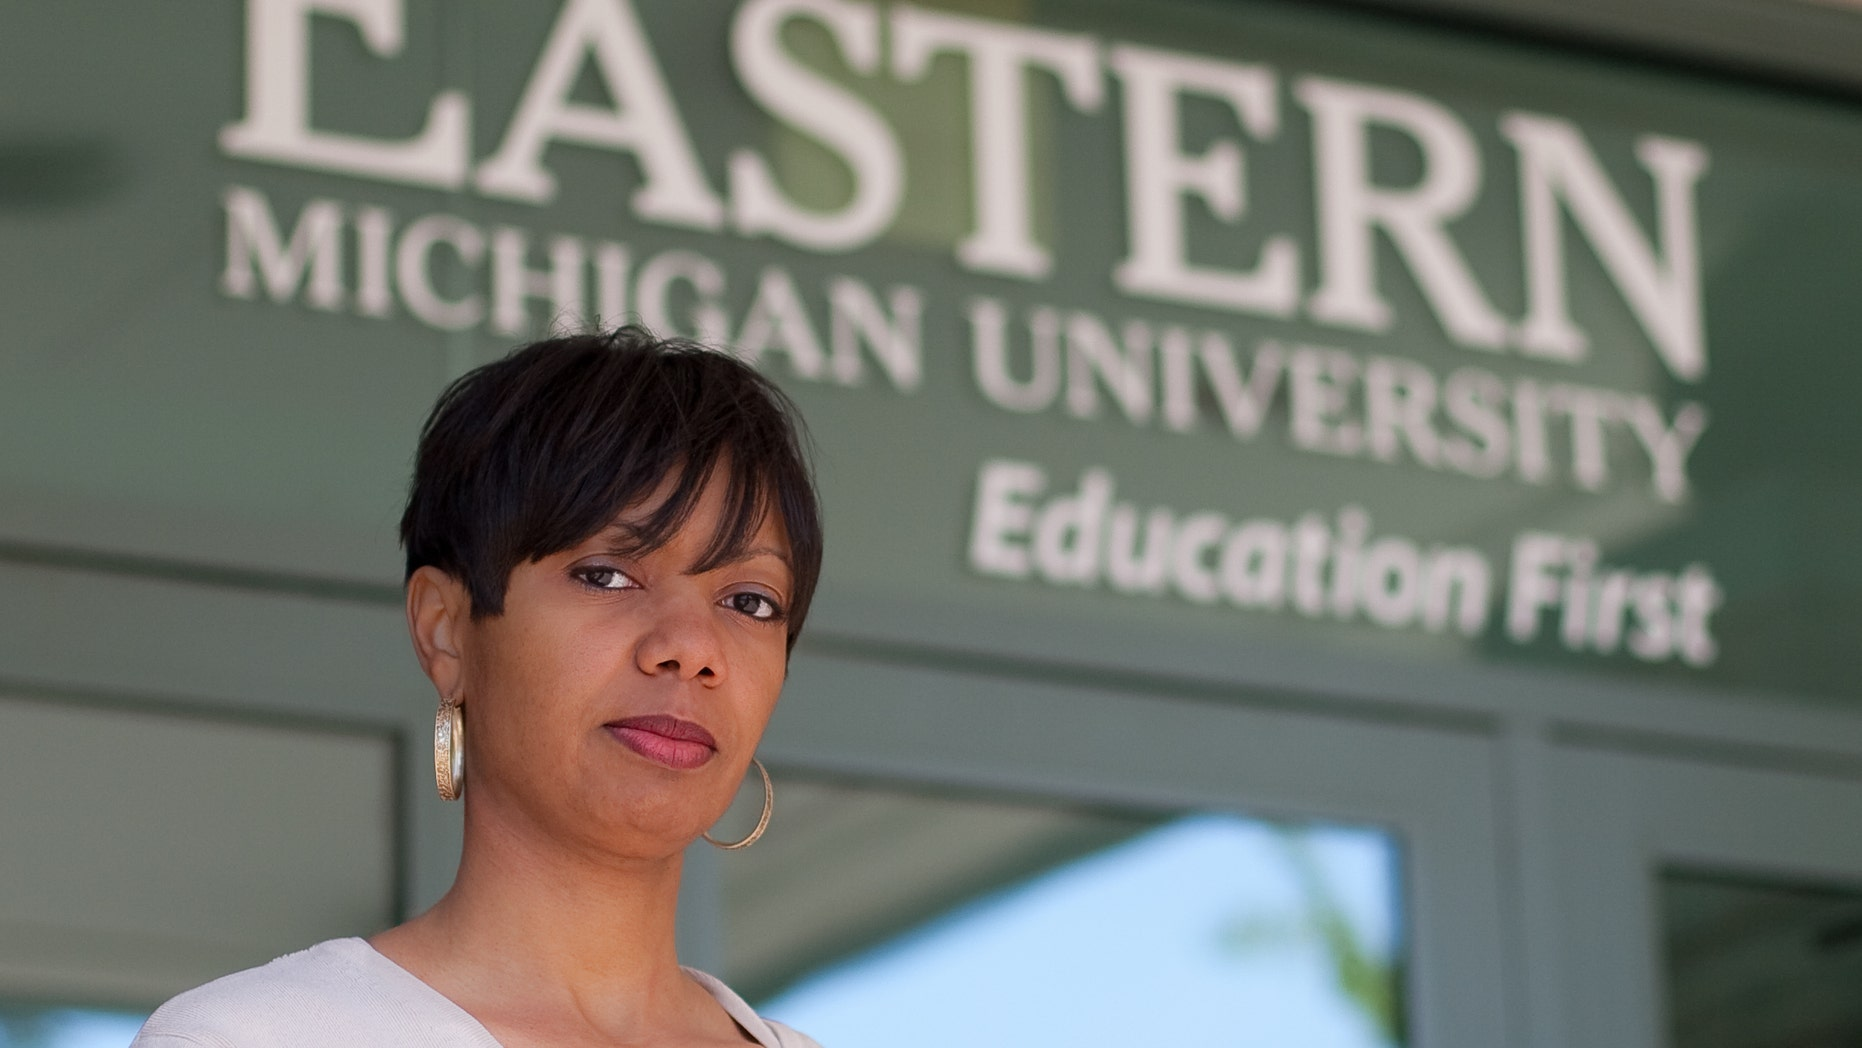 In July, a federal judge dismissed the lawsuit of Julea Ward, seen here, against Eastern Michigan University (EMU) after the school successfully contended she violated school policy and the American Counseling Association's code of ethics, which forbids counselors from discrimination in clinical practice.